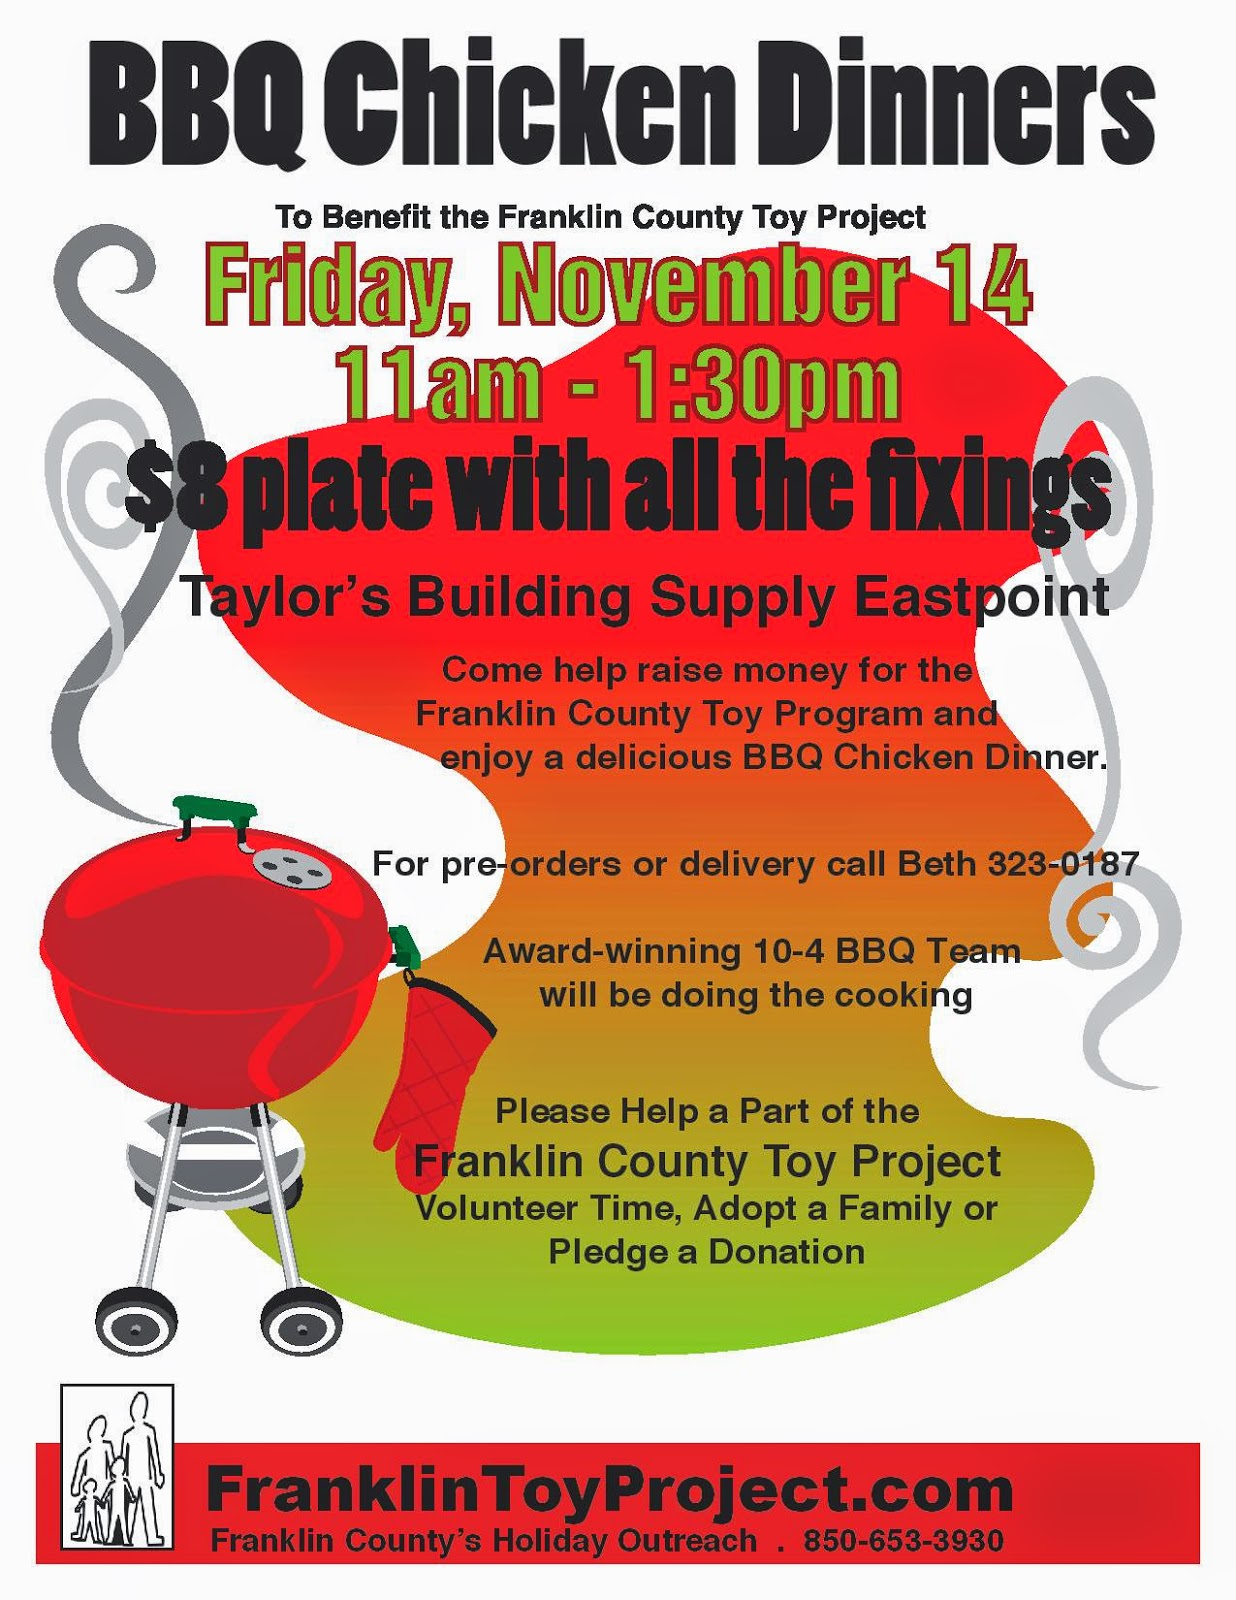 oyster radio toy project bbq chicken dinner fundraiser friday 11